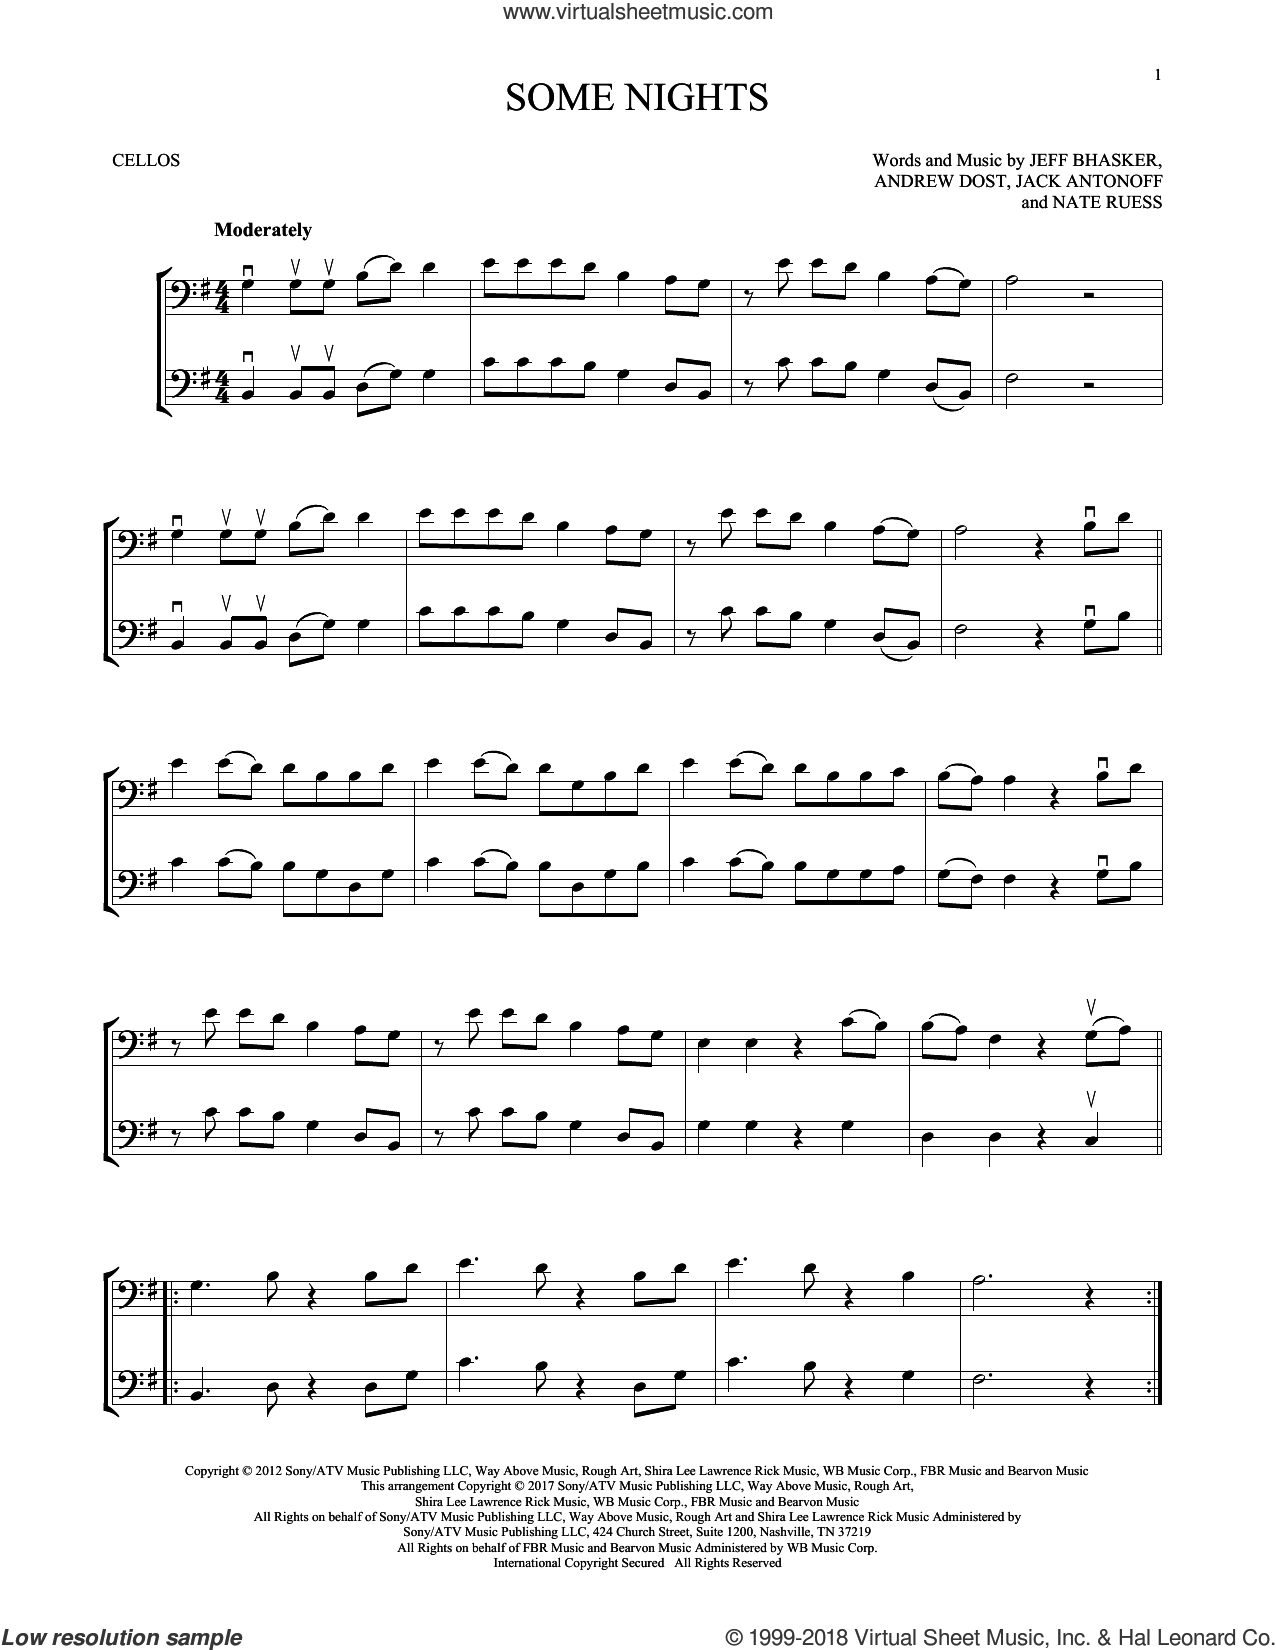 Some Nights sheet music for two cellos (duet, duets) by Fun, Andrew Dost, Jack Antonoff, Jeff Bhasker and Nate Ruess, intermediate skill level